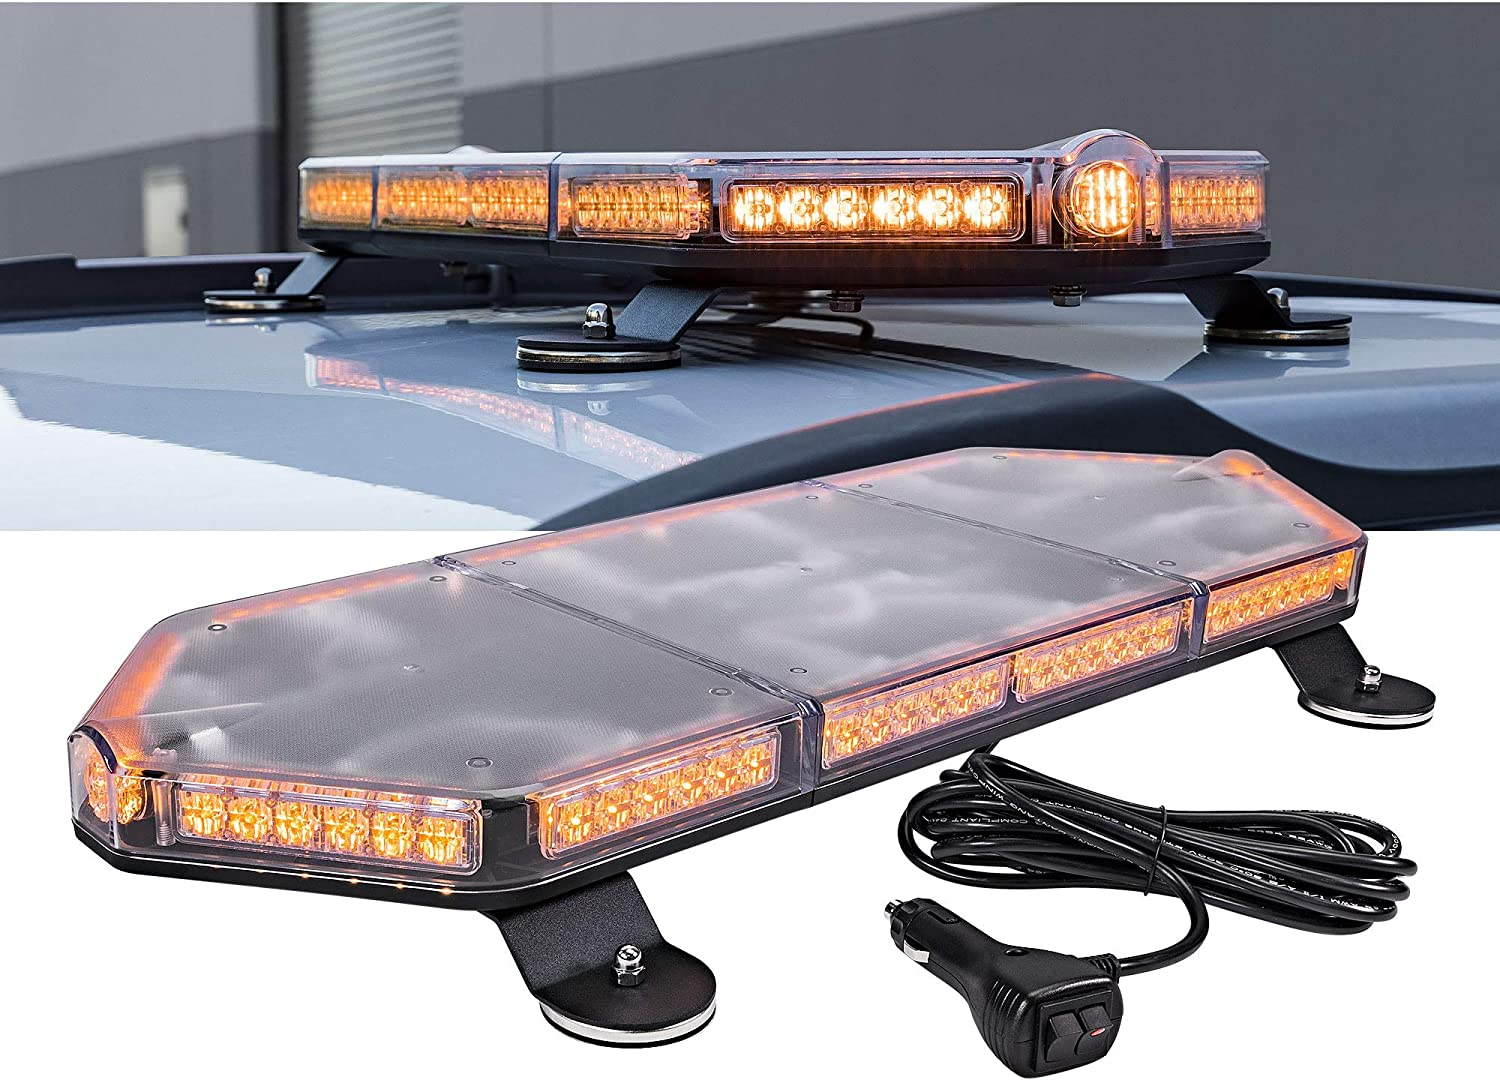 Flashing Emergency Warning Light Bar for Volunteer Firefighter Vehicle NanoFlare NFMB40 12 40W AMBER RED LED Strobe Mini Light Bar Magnet or Permanent SAE Class 1 63 Flash Modes 12ft Cord